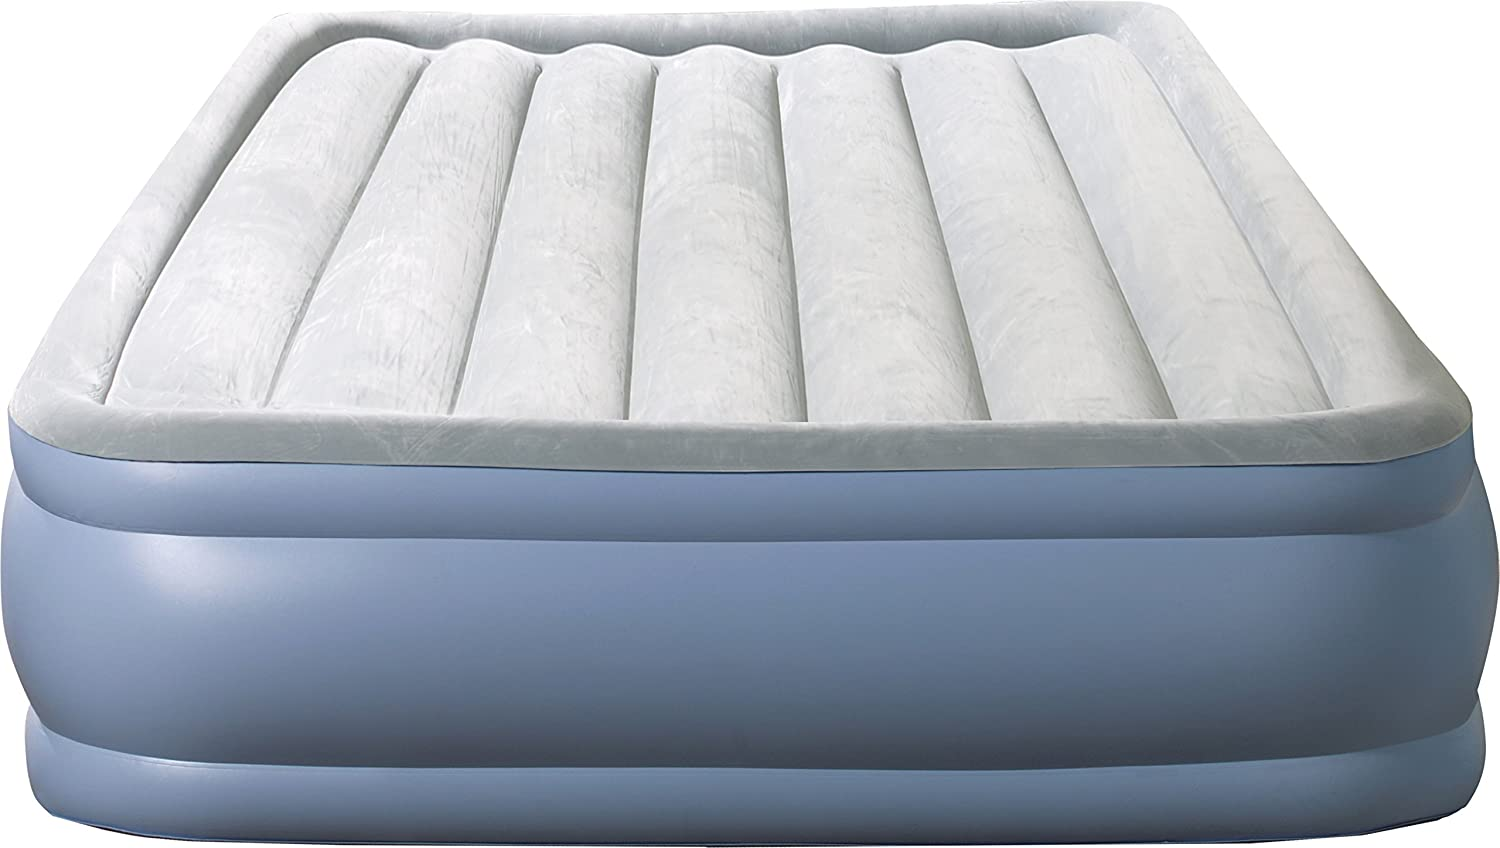 Simmons Beautyrest Hi-Loft Inflatable Air Mattress: Raised-Profile Air Bed with External Pump, Full HDDOD7112DB